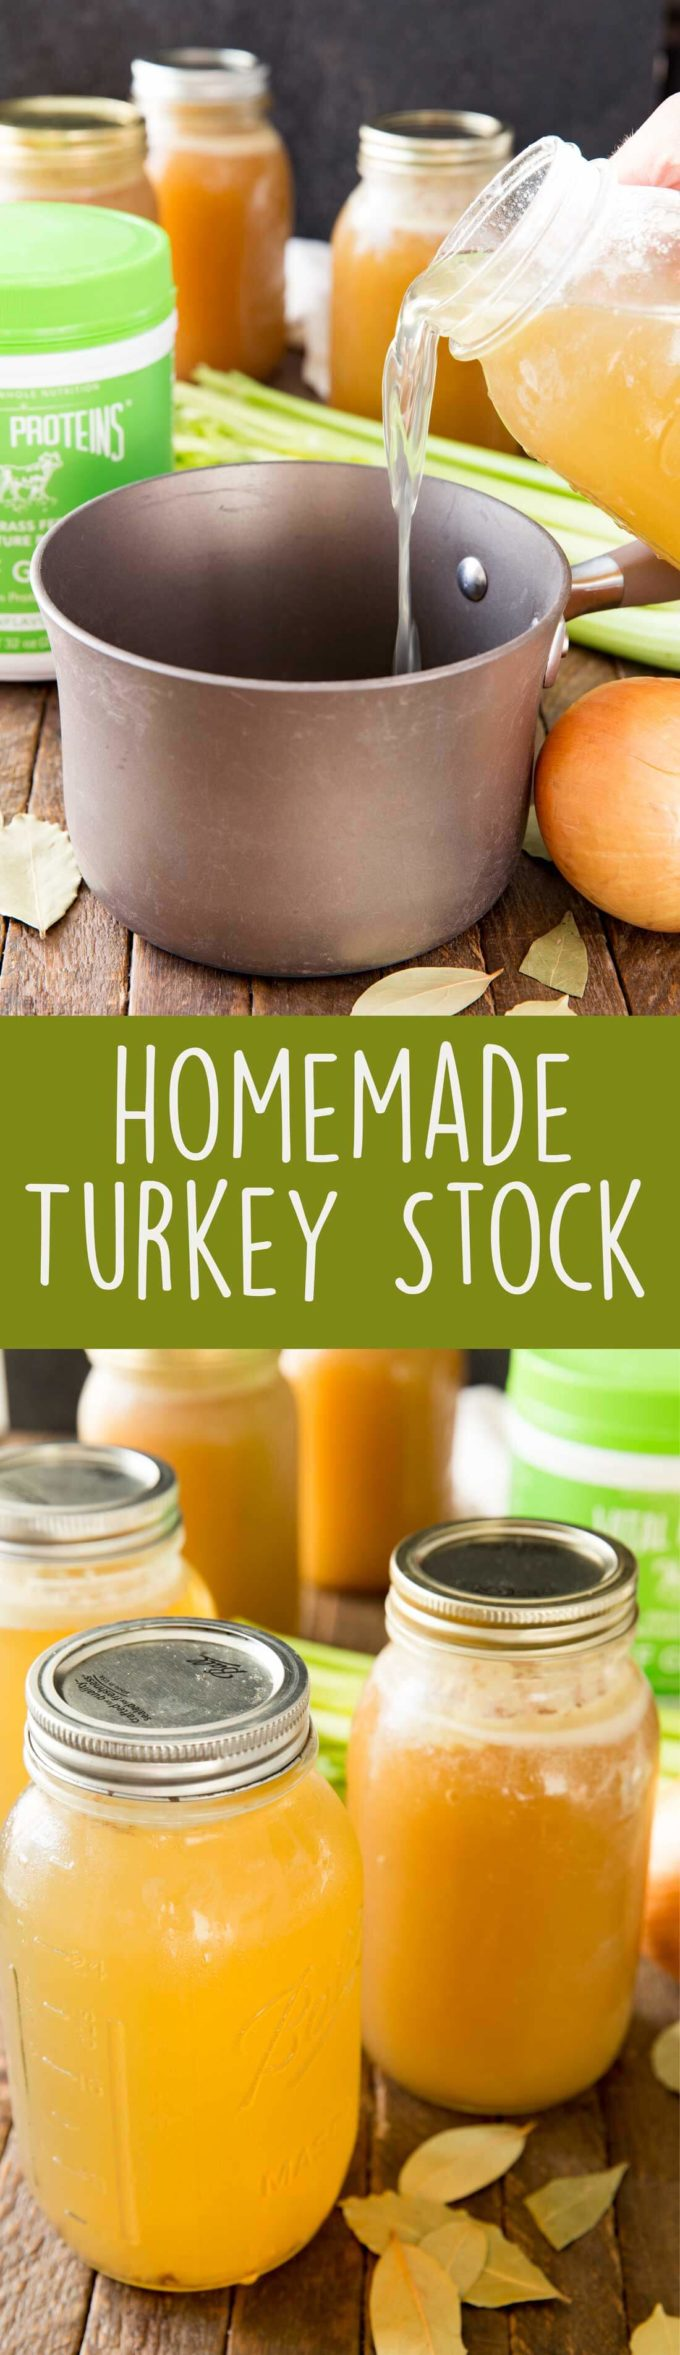 How to make homemade turkey stock to be frozen and used all year